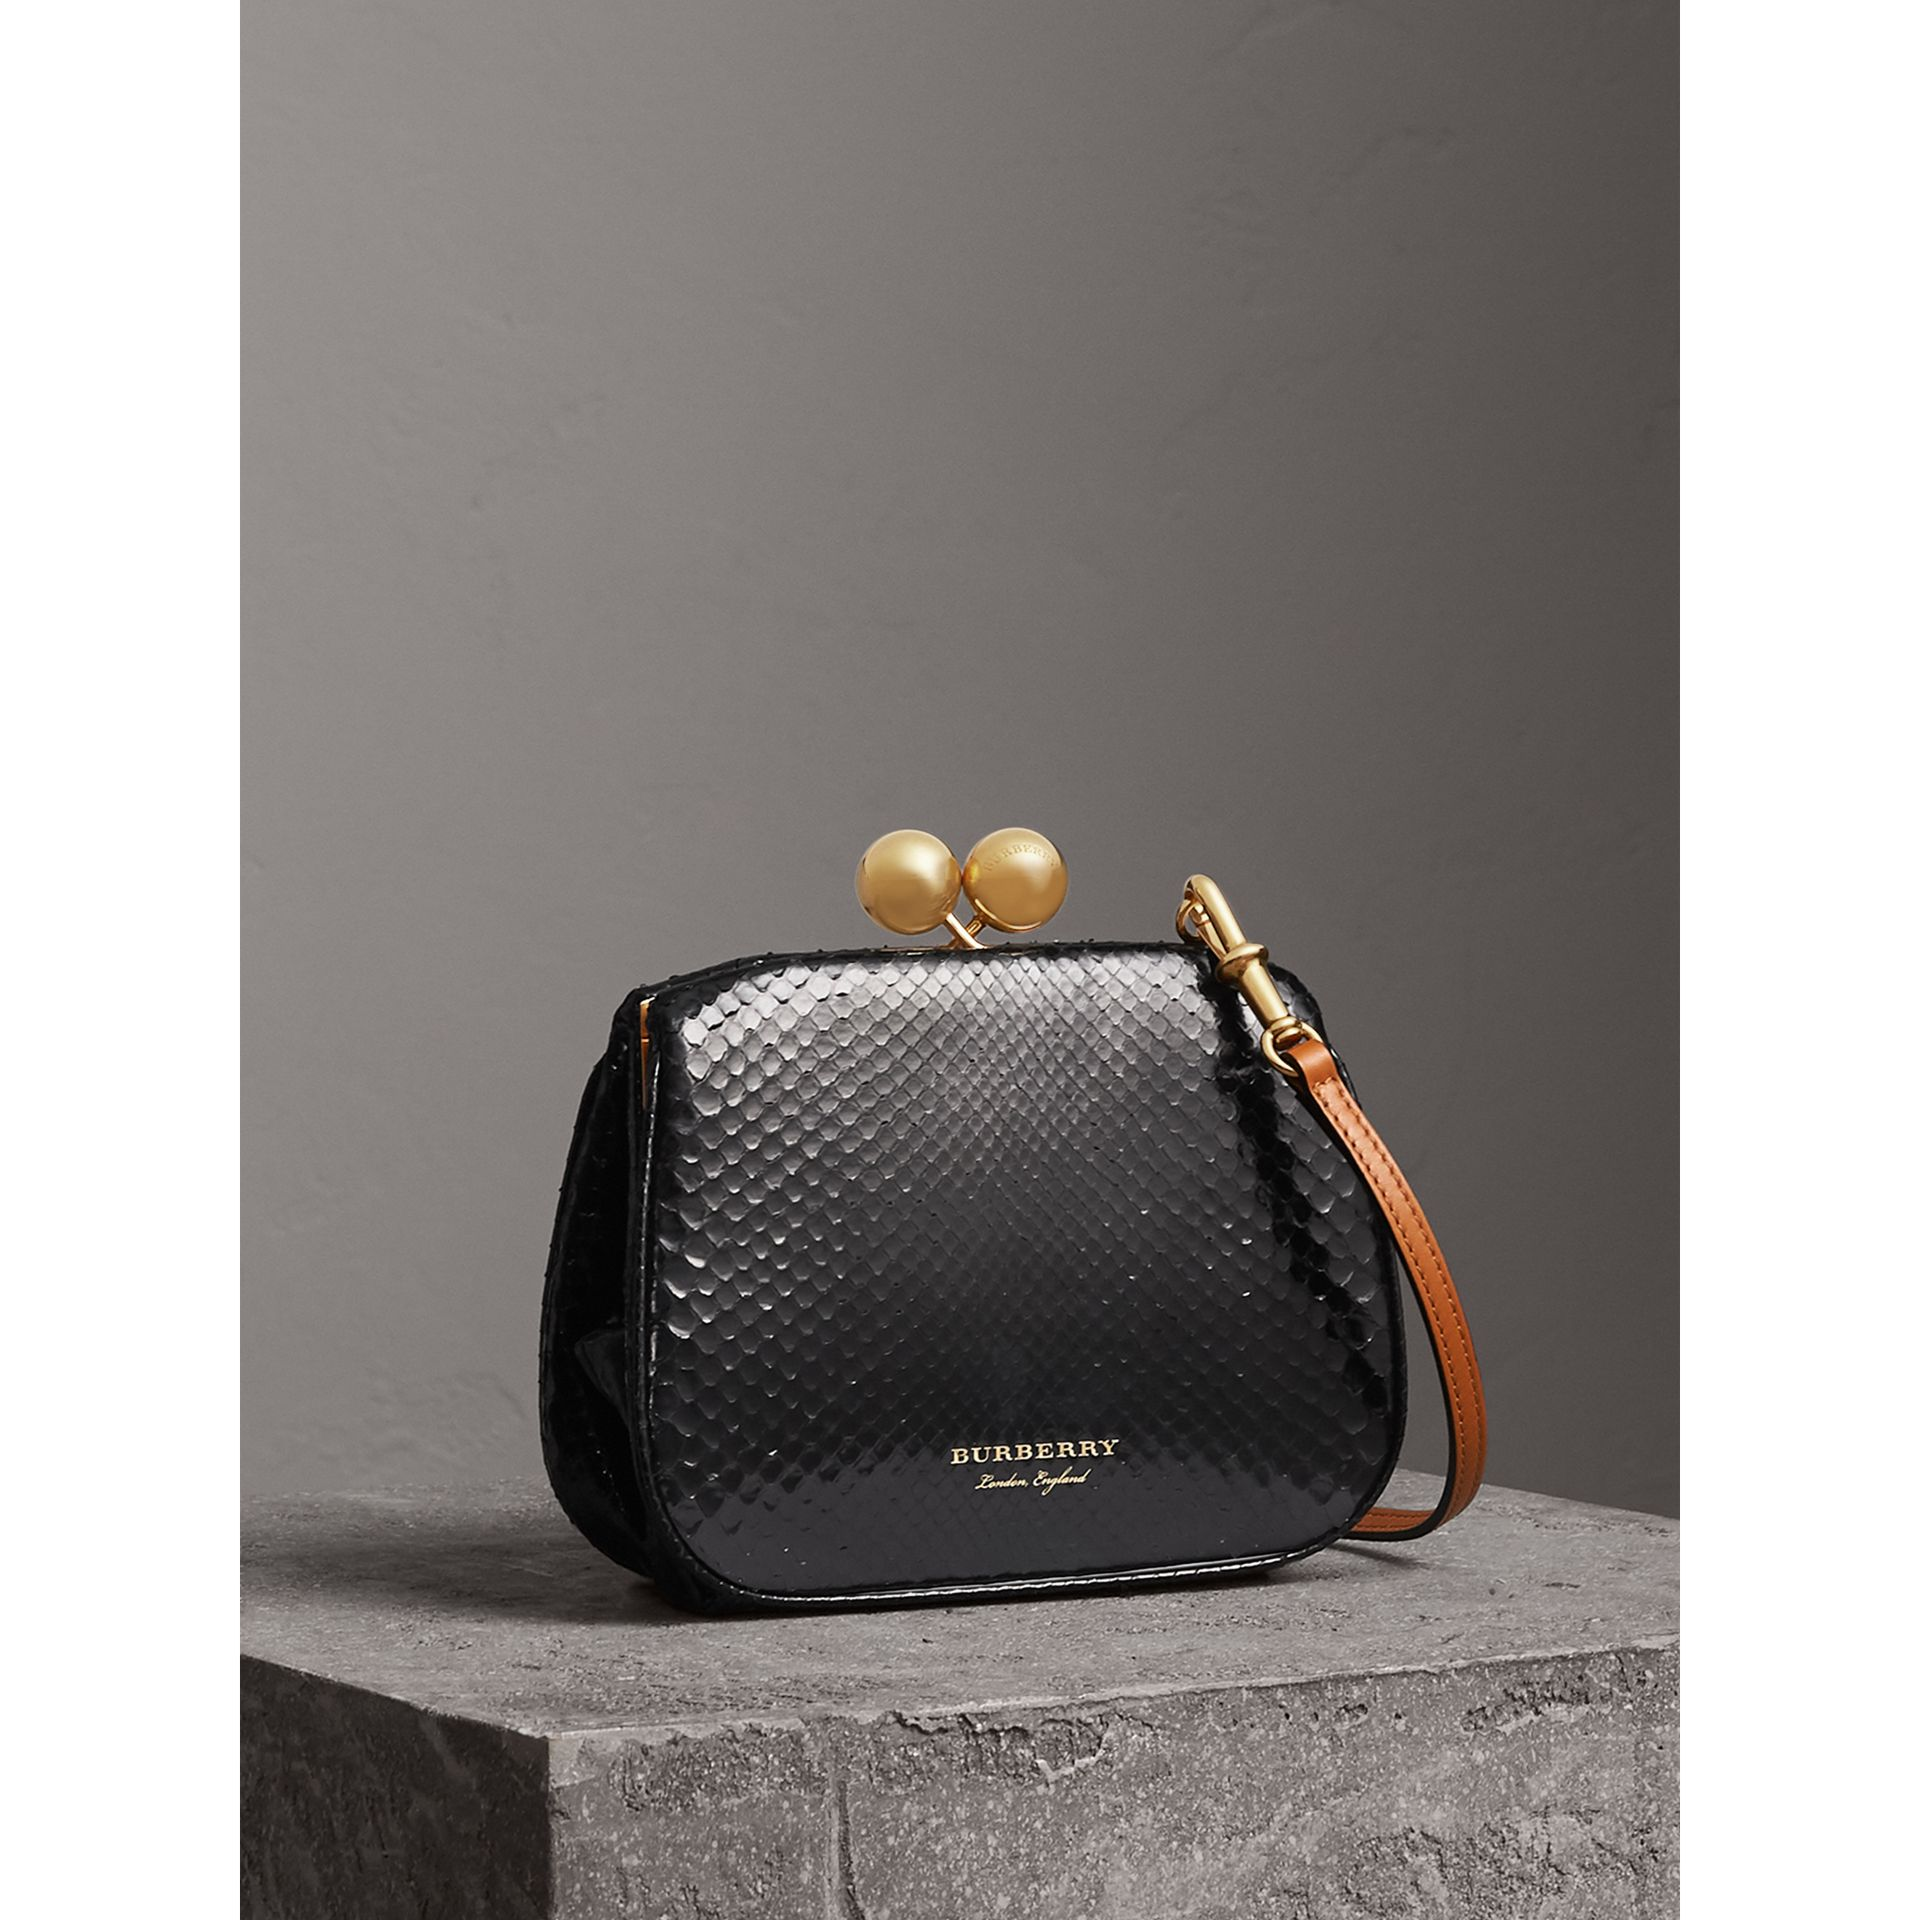 Small Two-tone Python Metal Frame Clutch Bag in Black - Women | Burberry - gallery image 6